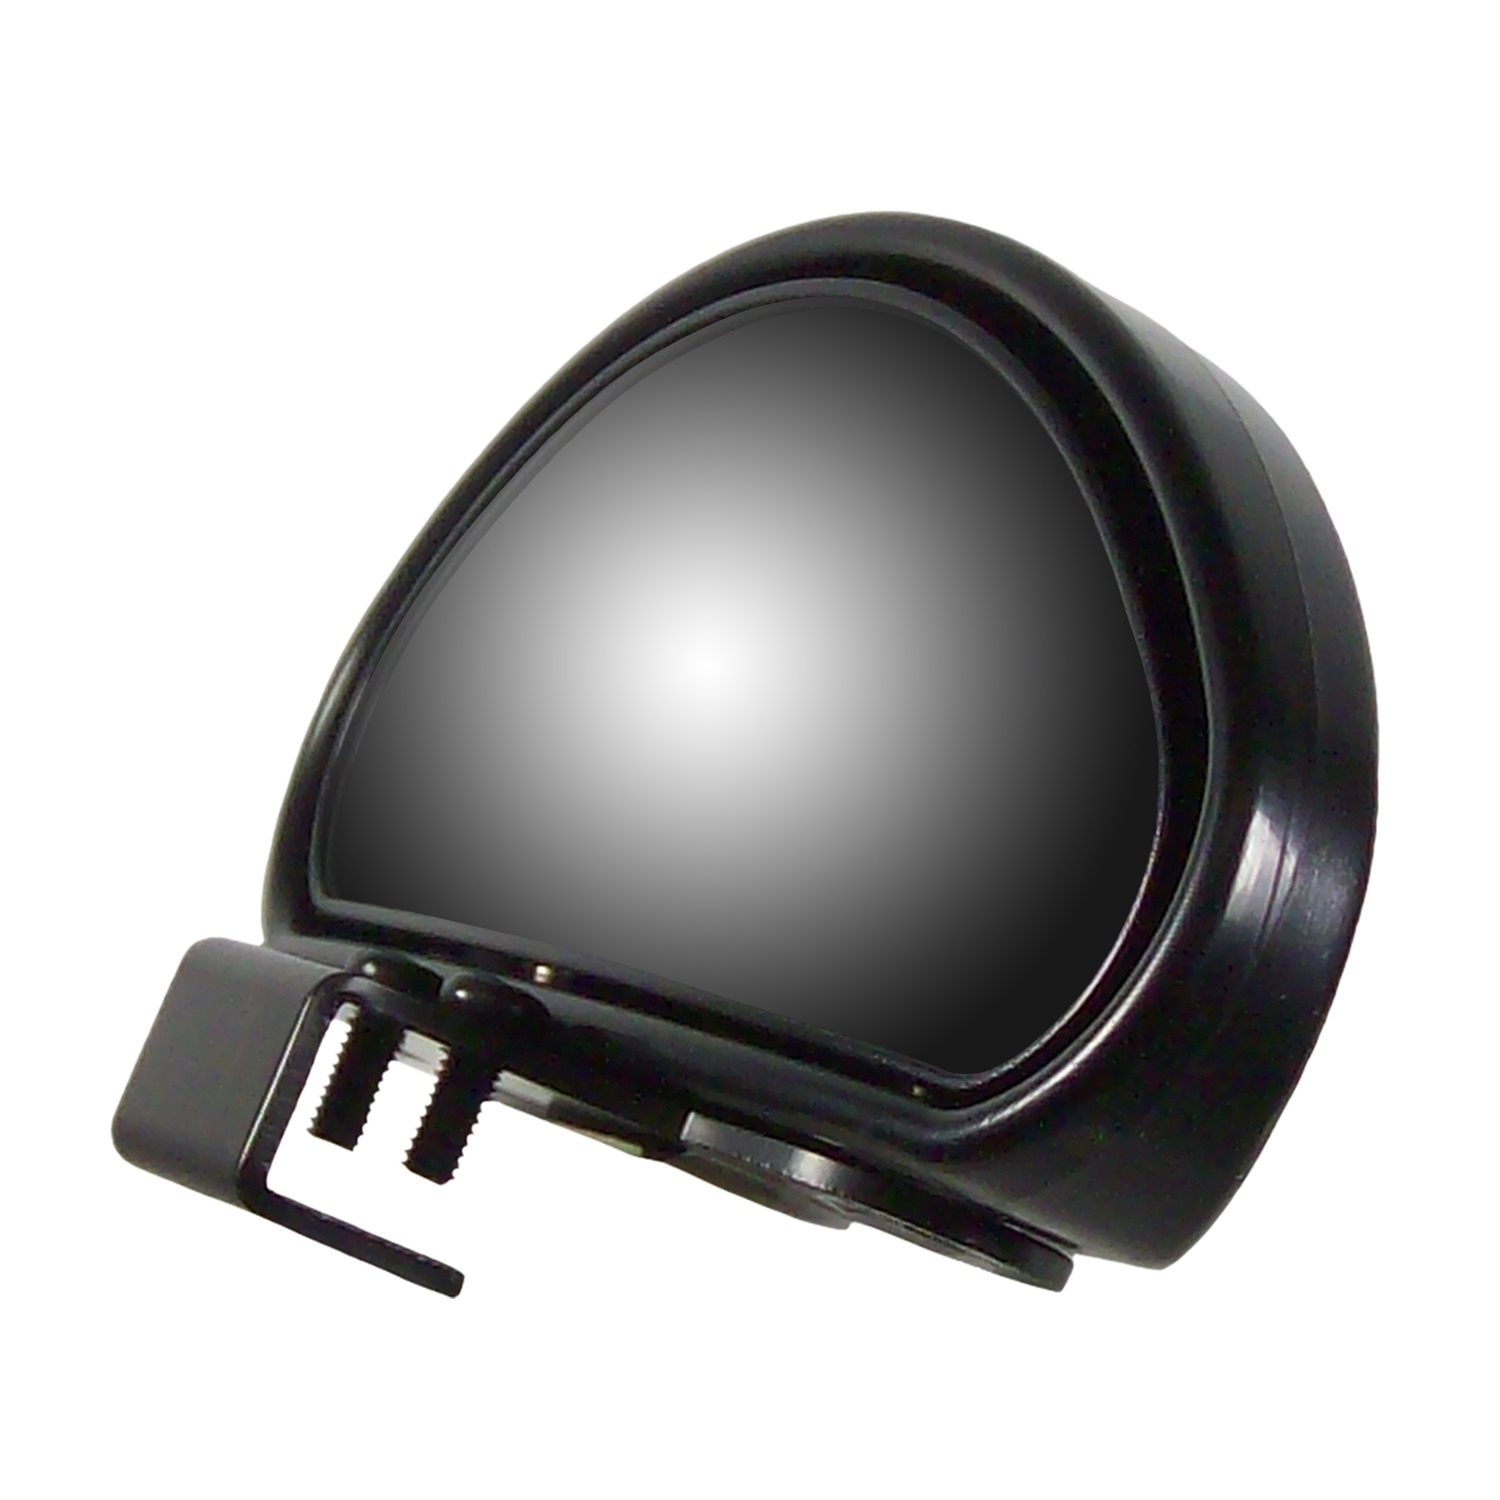 Cipa Mirrors 49805 Hotspots Convex Blind Spot Mirror Clamp